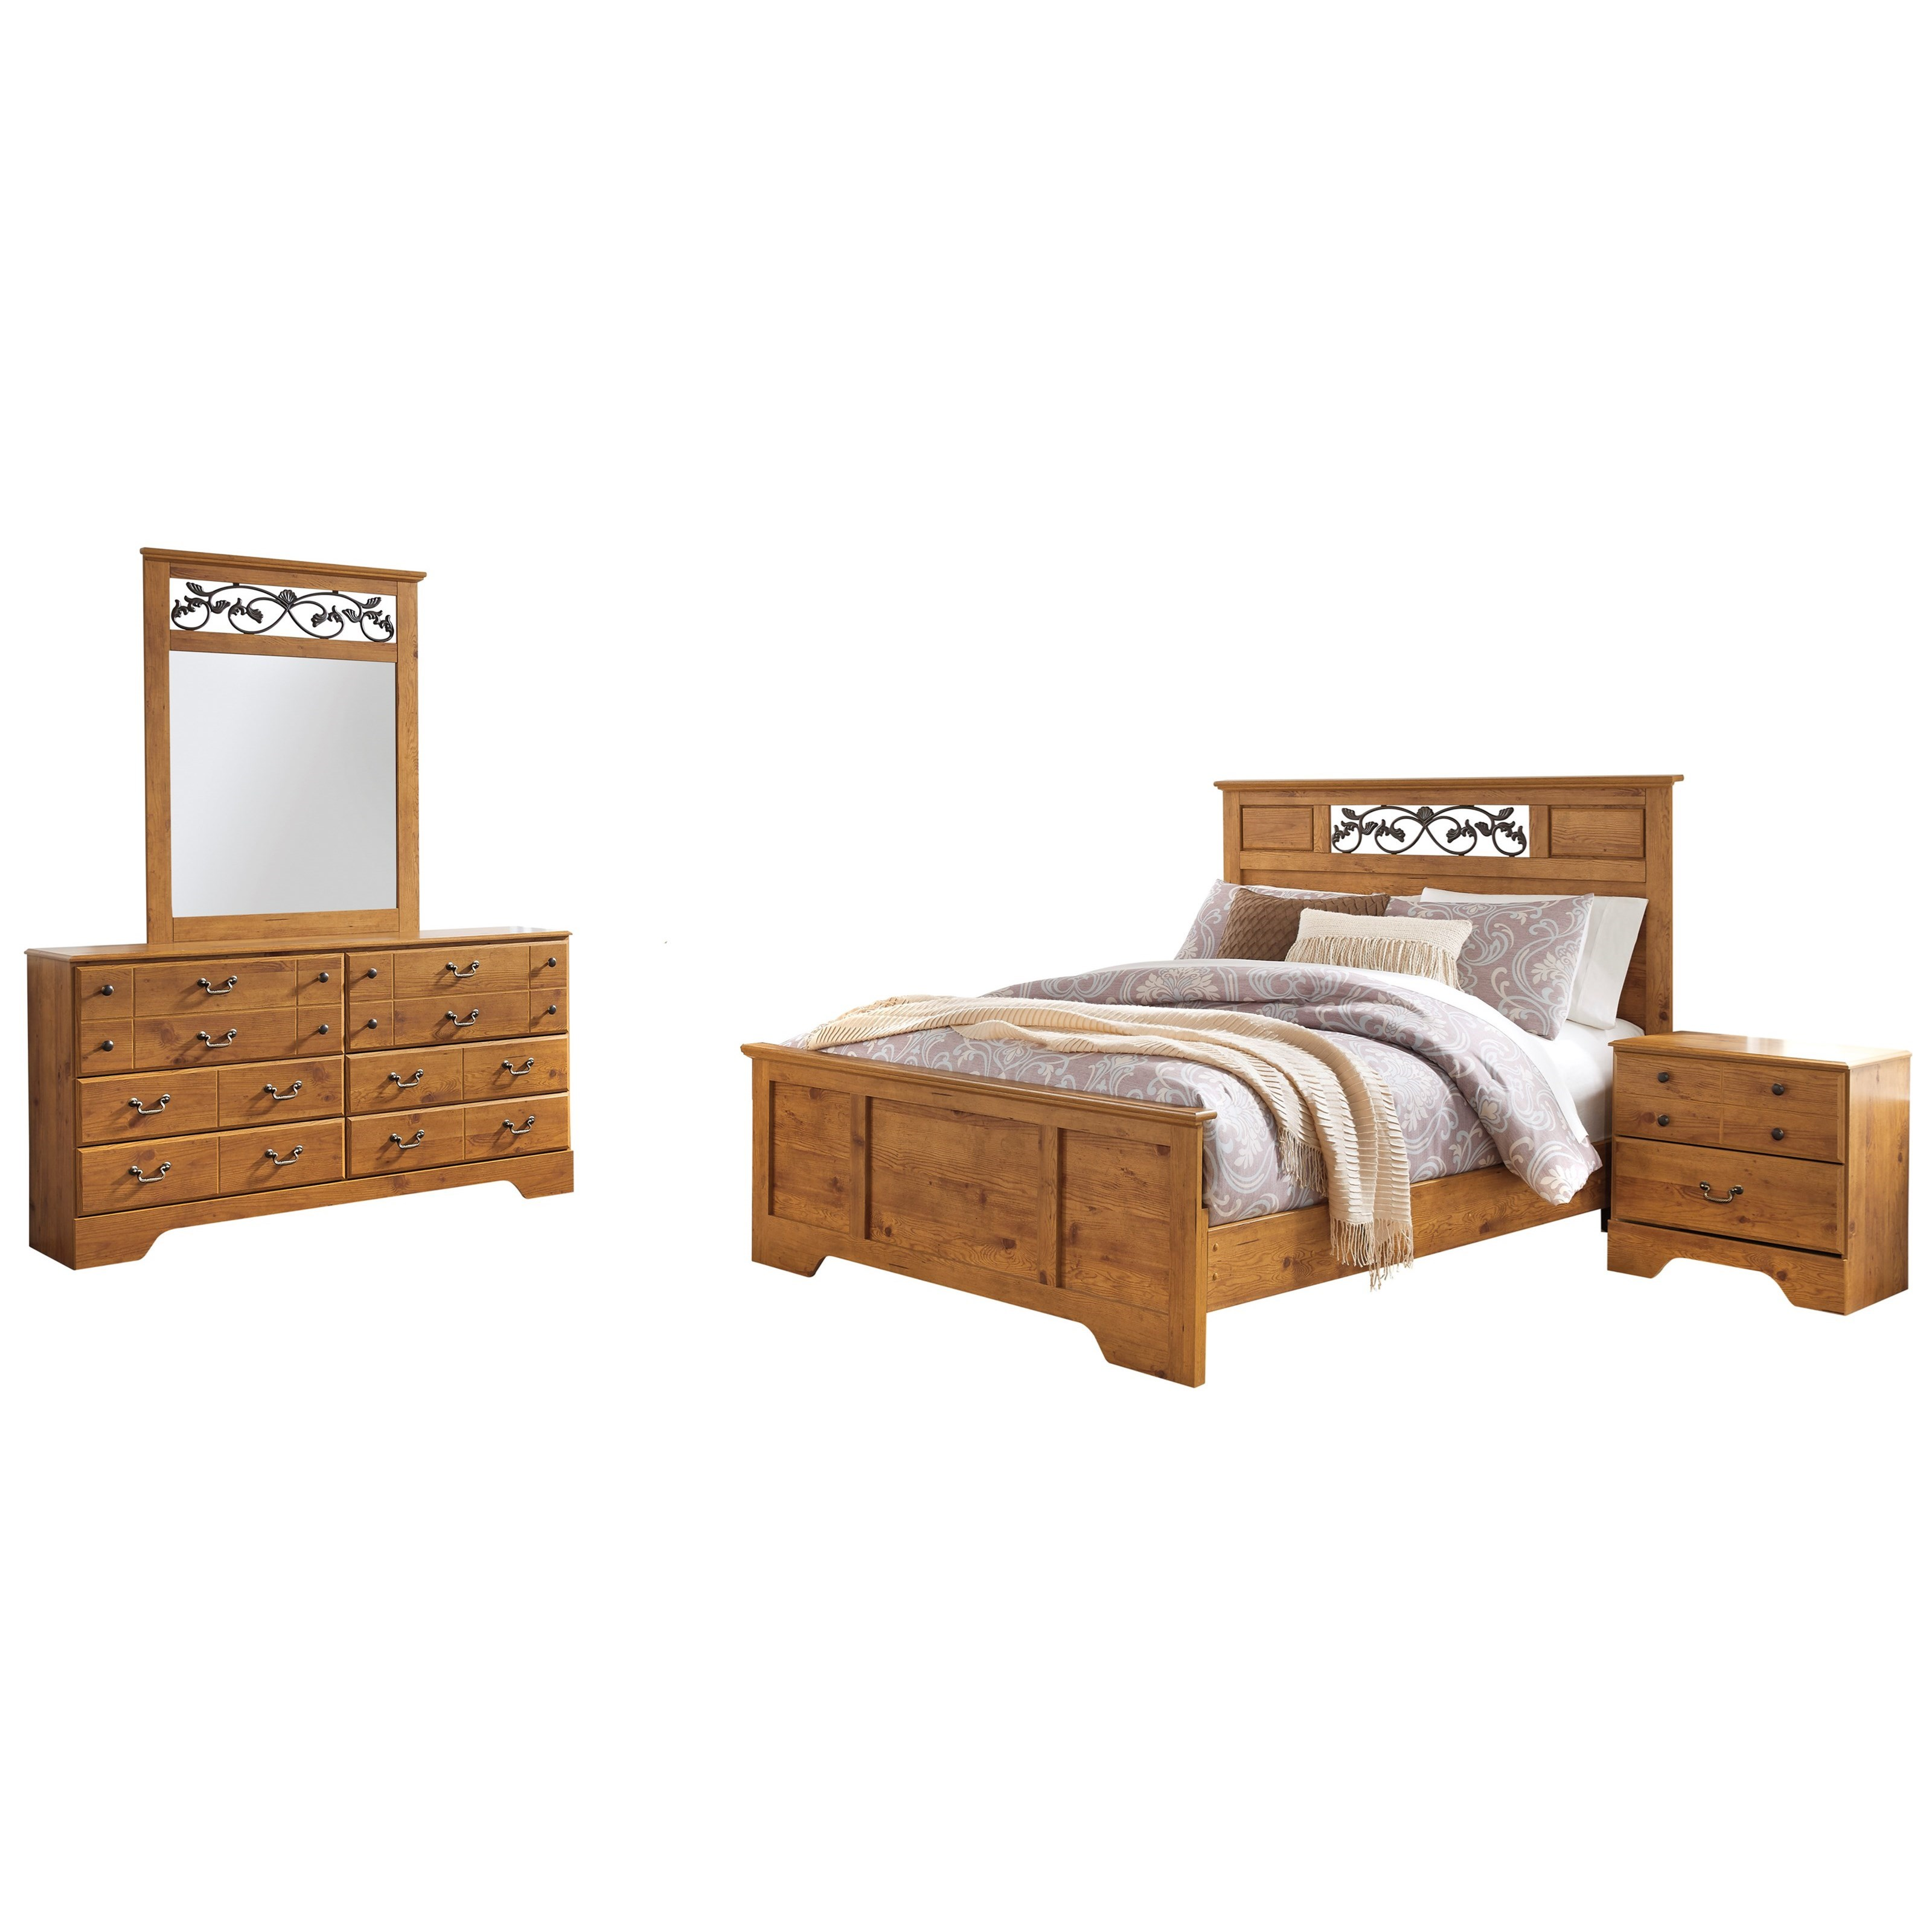 Bittersweet Queen Bedroom Group by Ashley (Signature Design) at Johnny Janosik